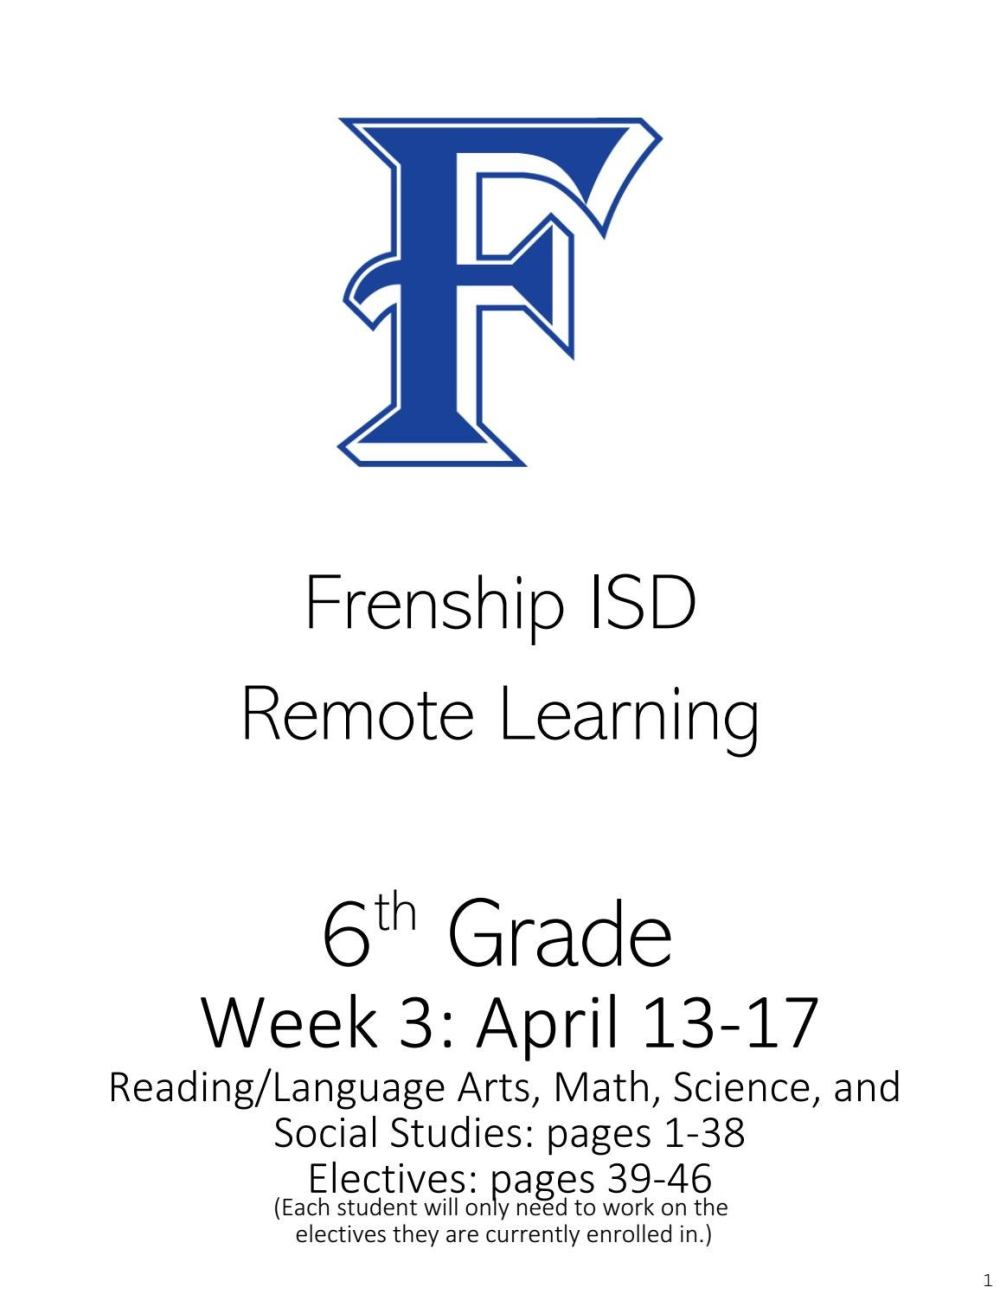 medium resolution of 6th Grade Remote Learning April 13-17 by frenshipisd - issuu